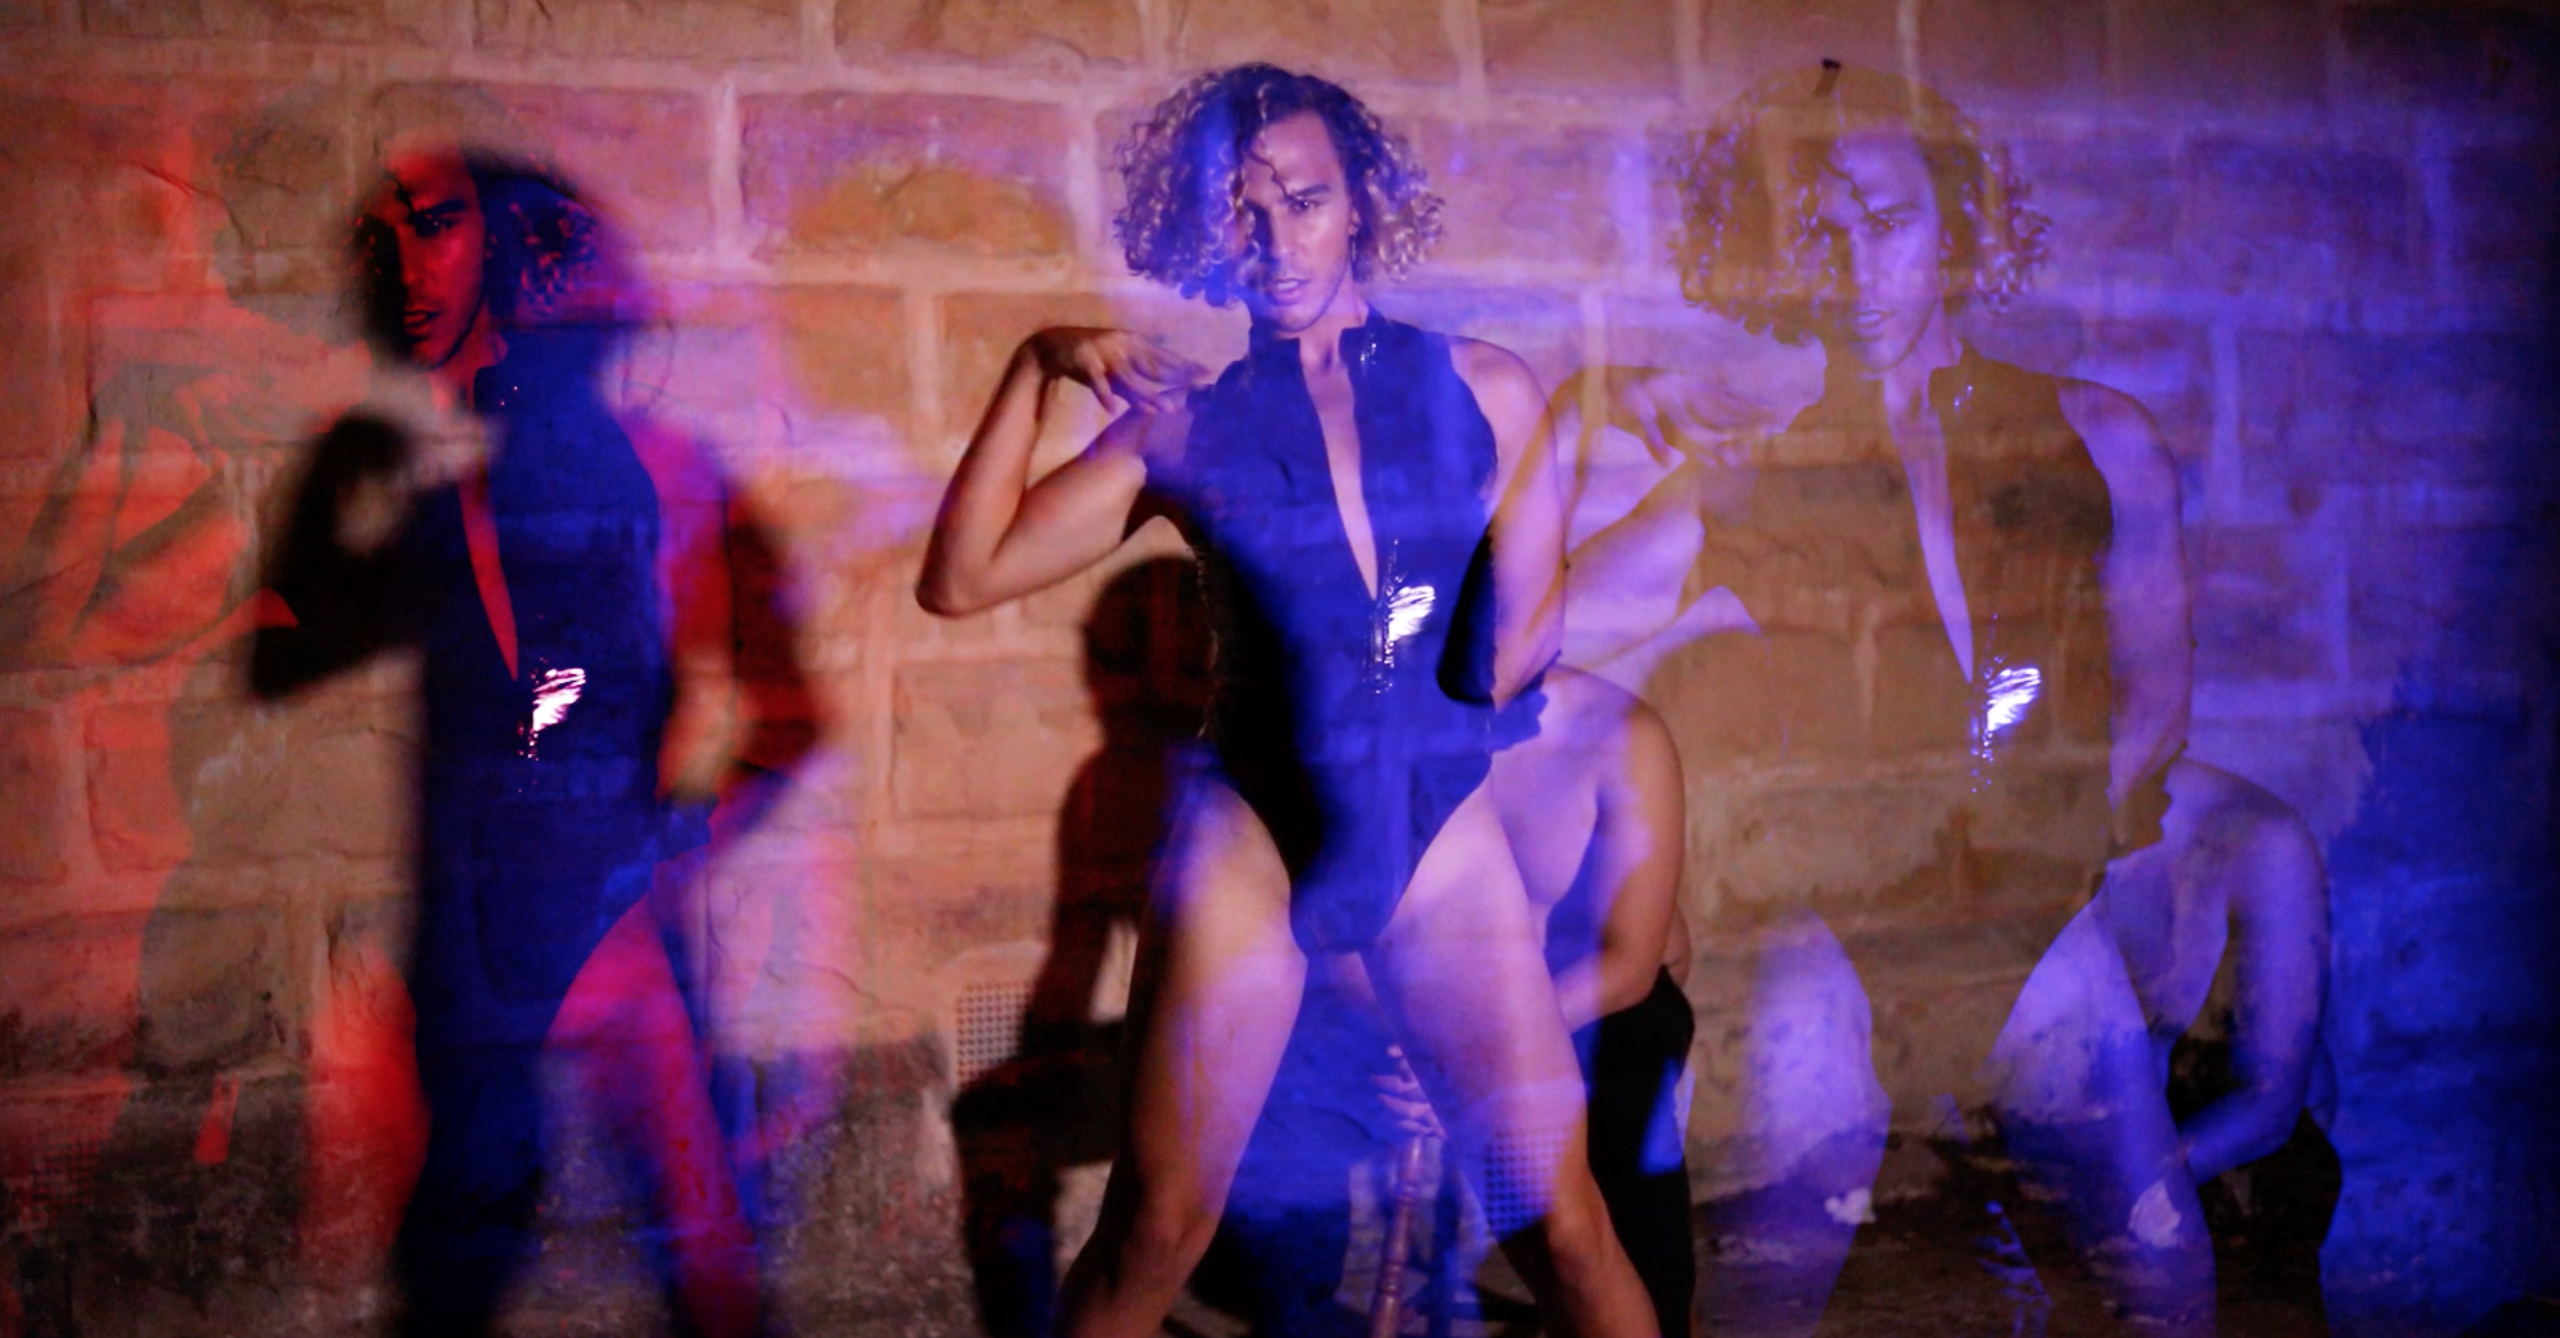 NEW RELEASE: Racy Music Video For OXYGEN